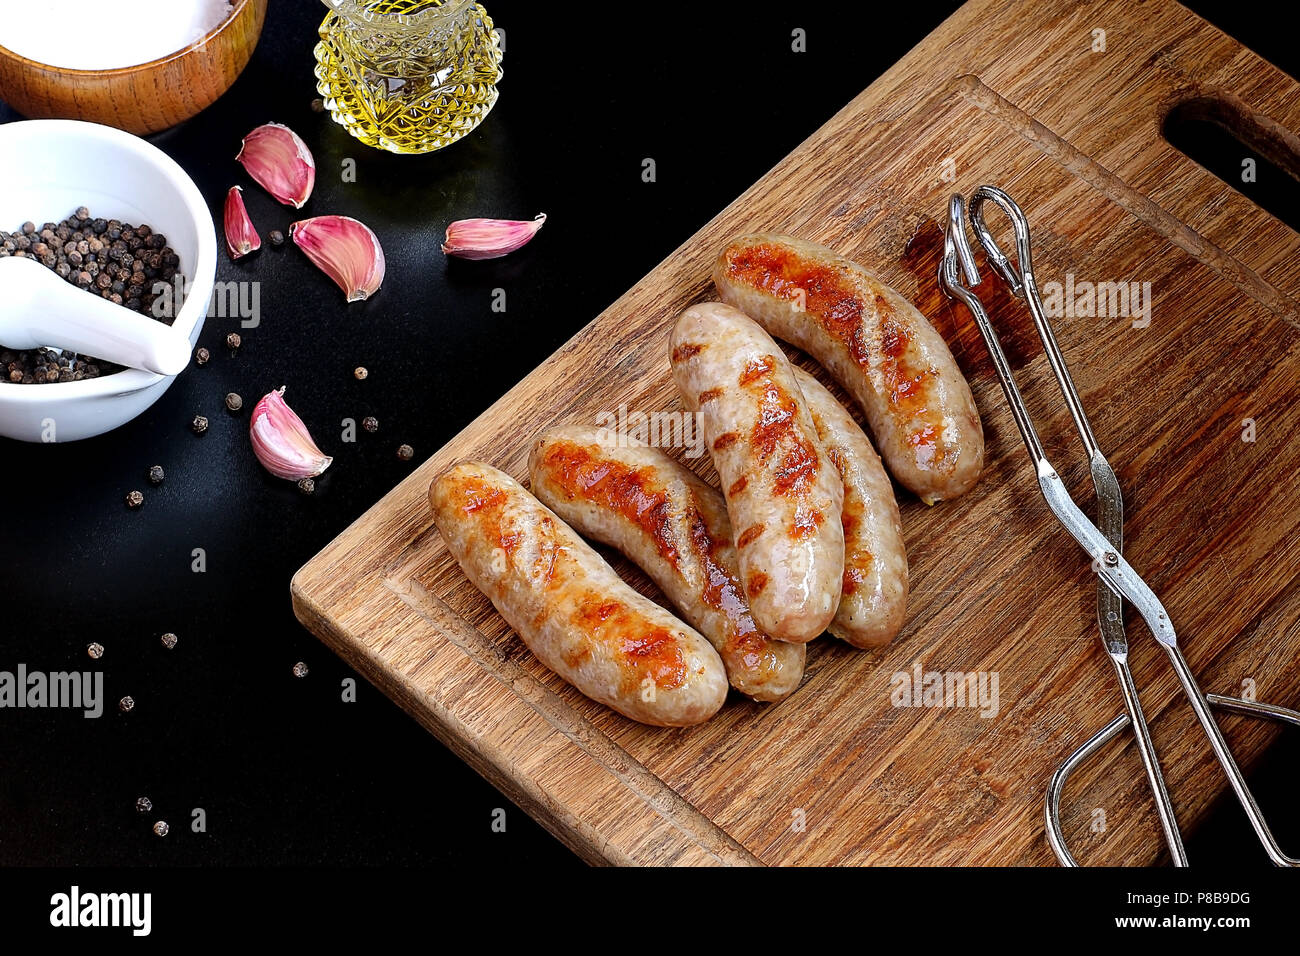 Hot Grilled German Bratwurst rest on a Wooden Board Stock Photo